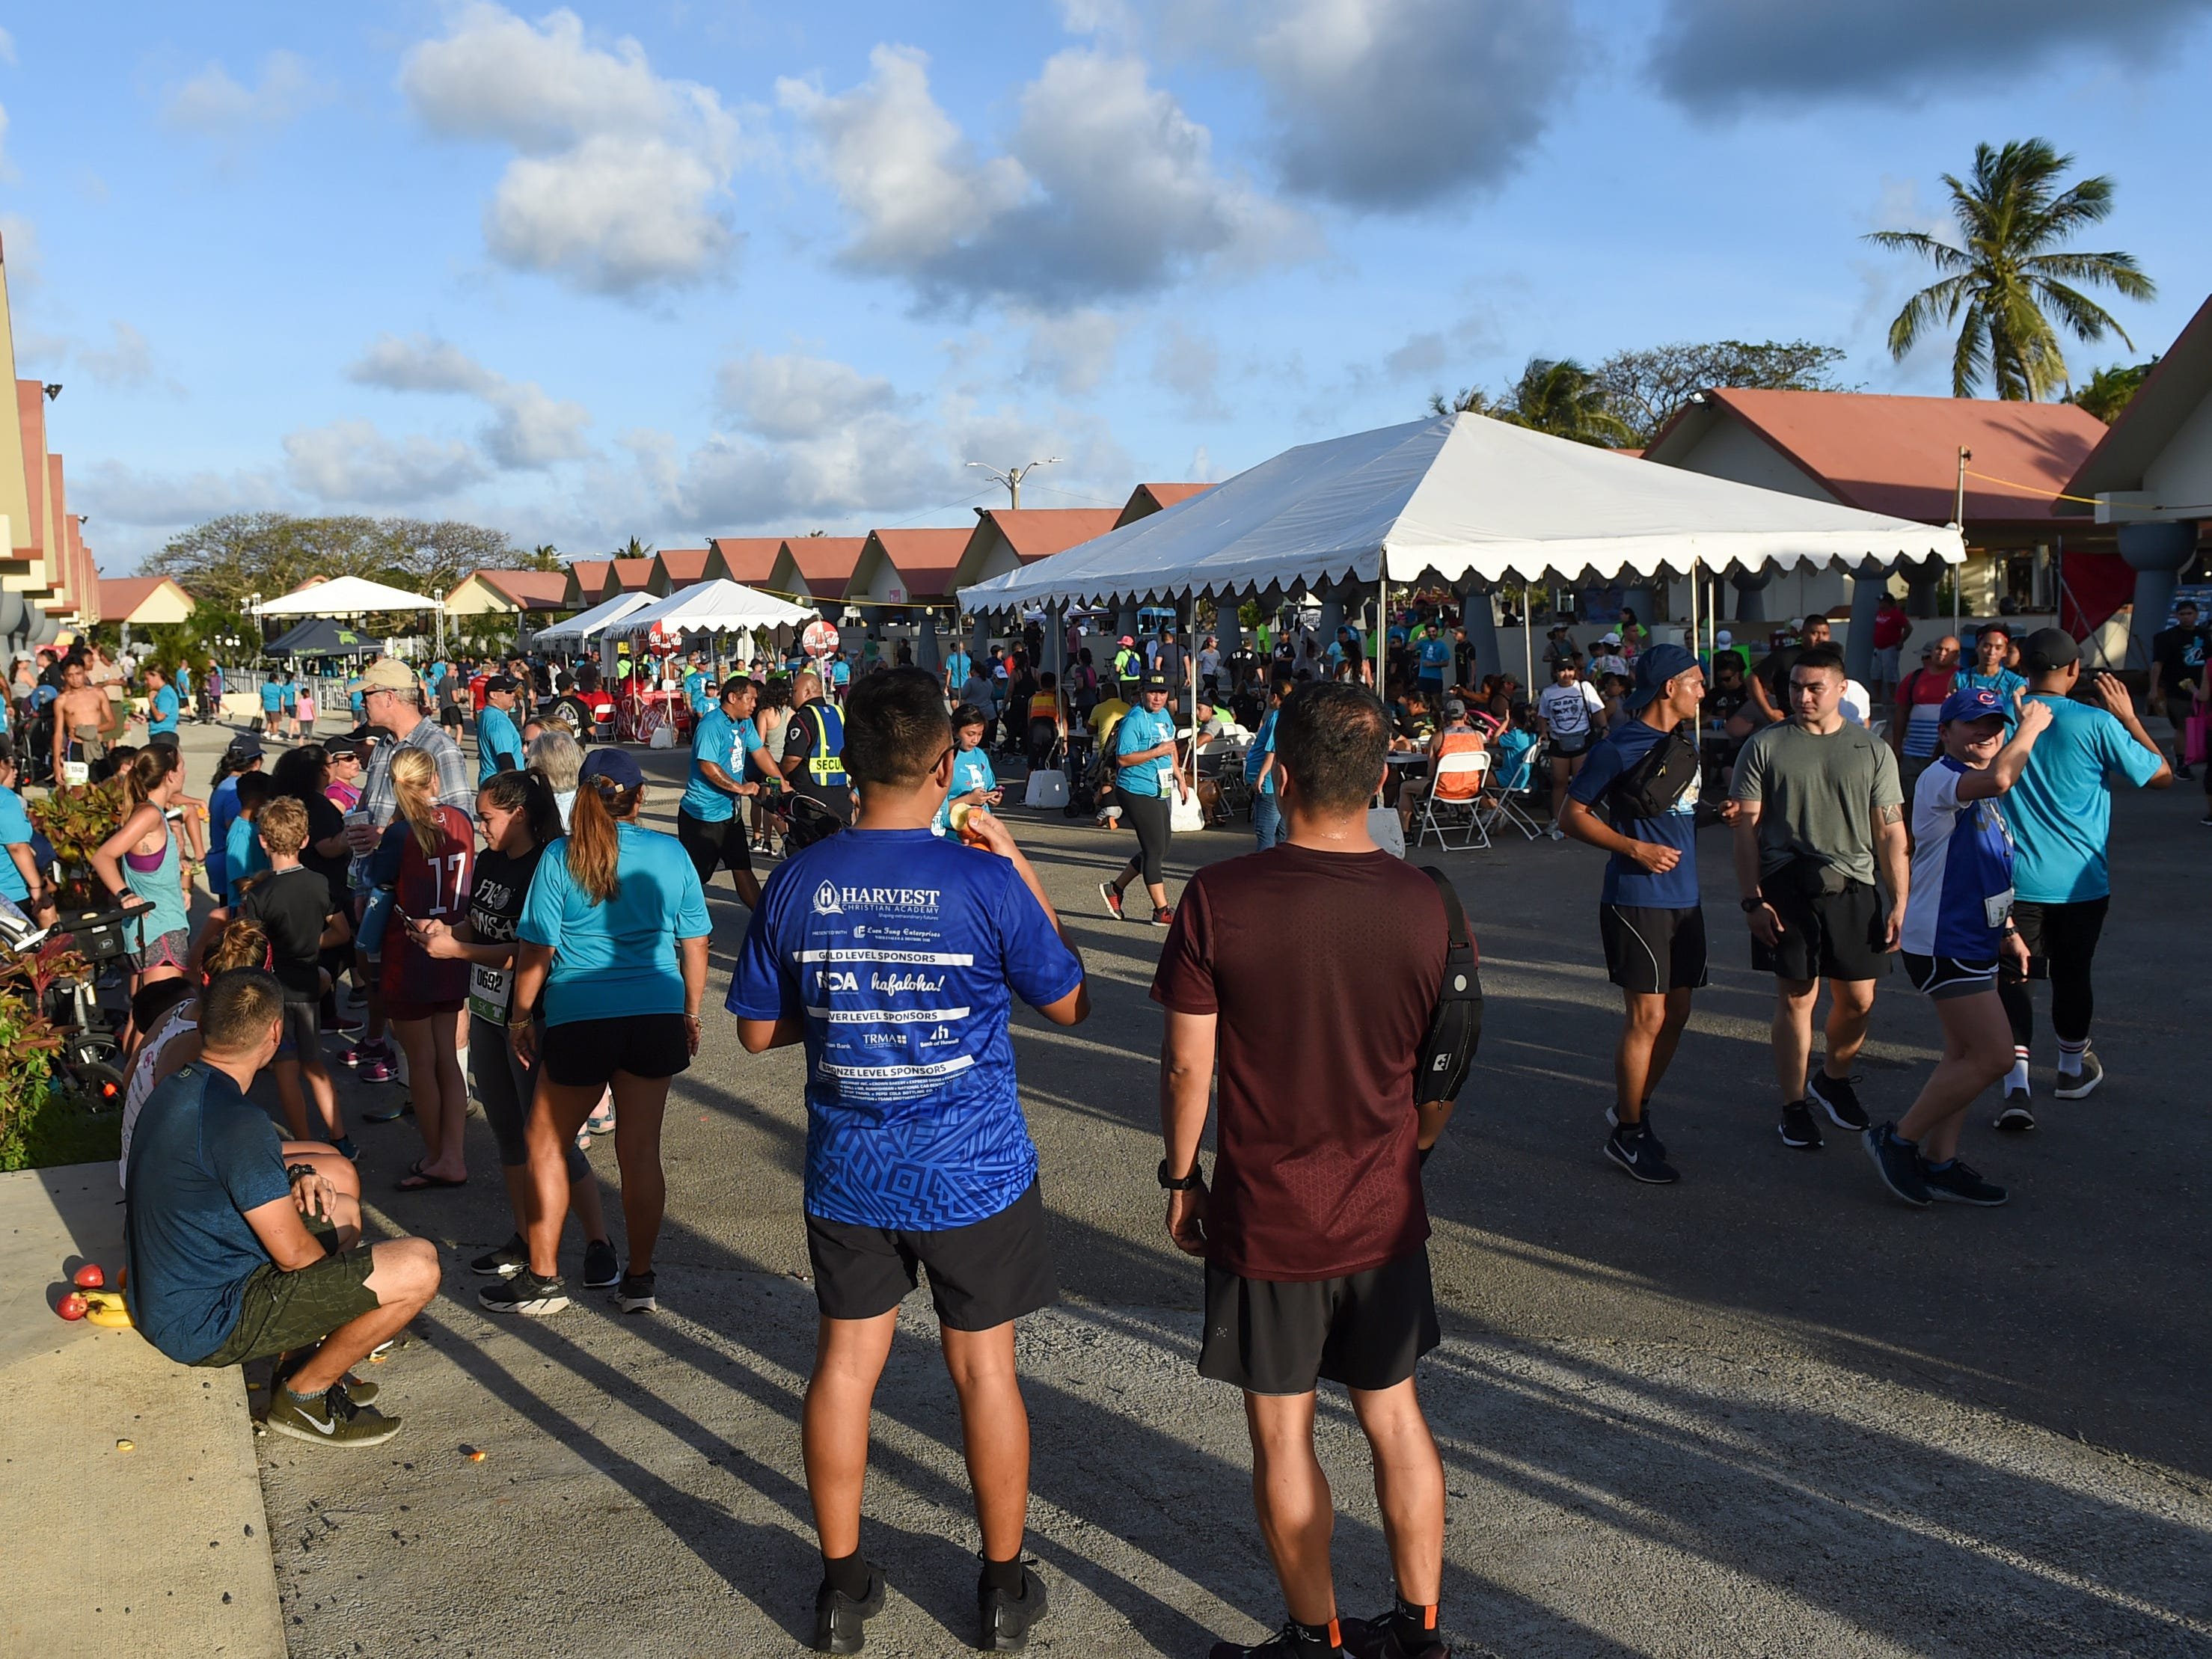 Crowds form for the Bank of Guam Ifit Run and Block Party at Chamorro Village in Hagåtña, March 9, 2019.